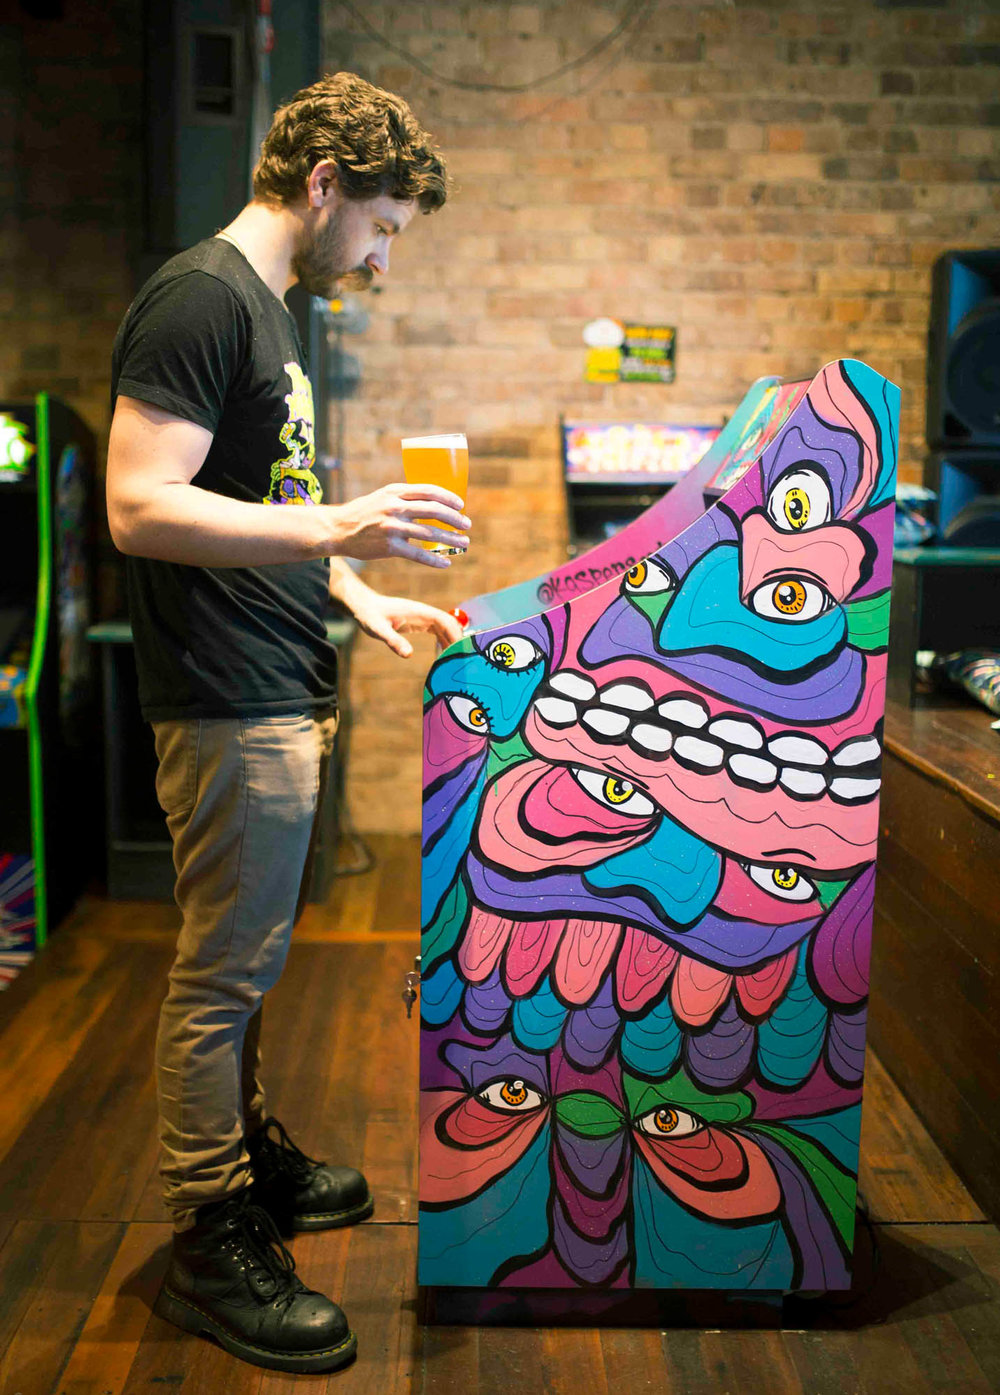 Fully Functioning Arcade Machine painted at Netherworld bar in collaboration with 4ZZZ